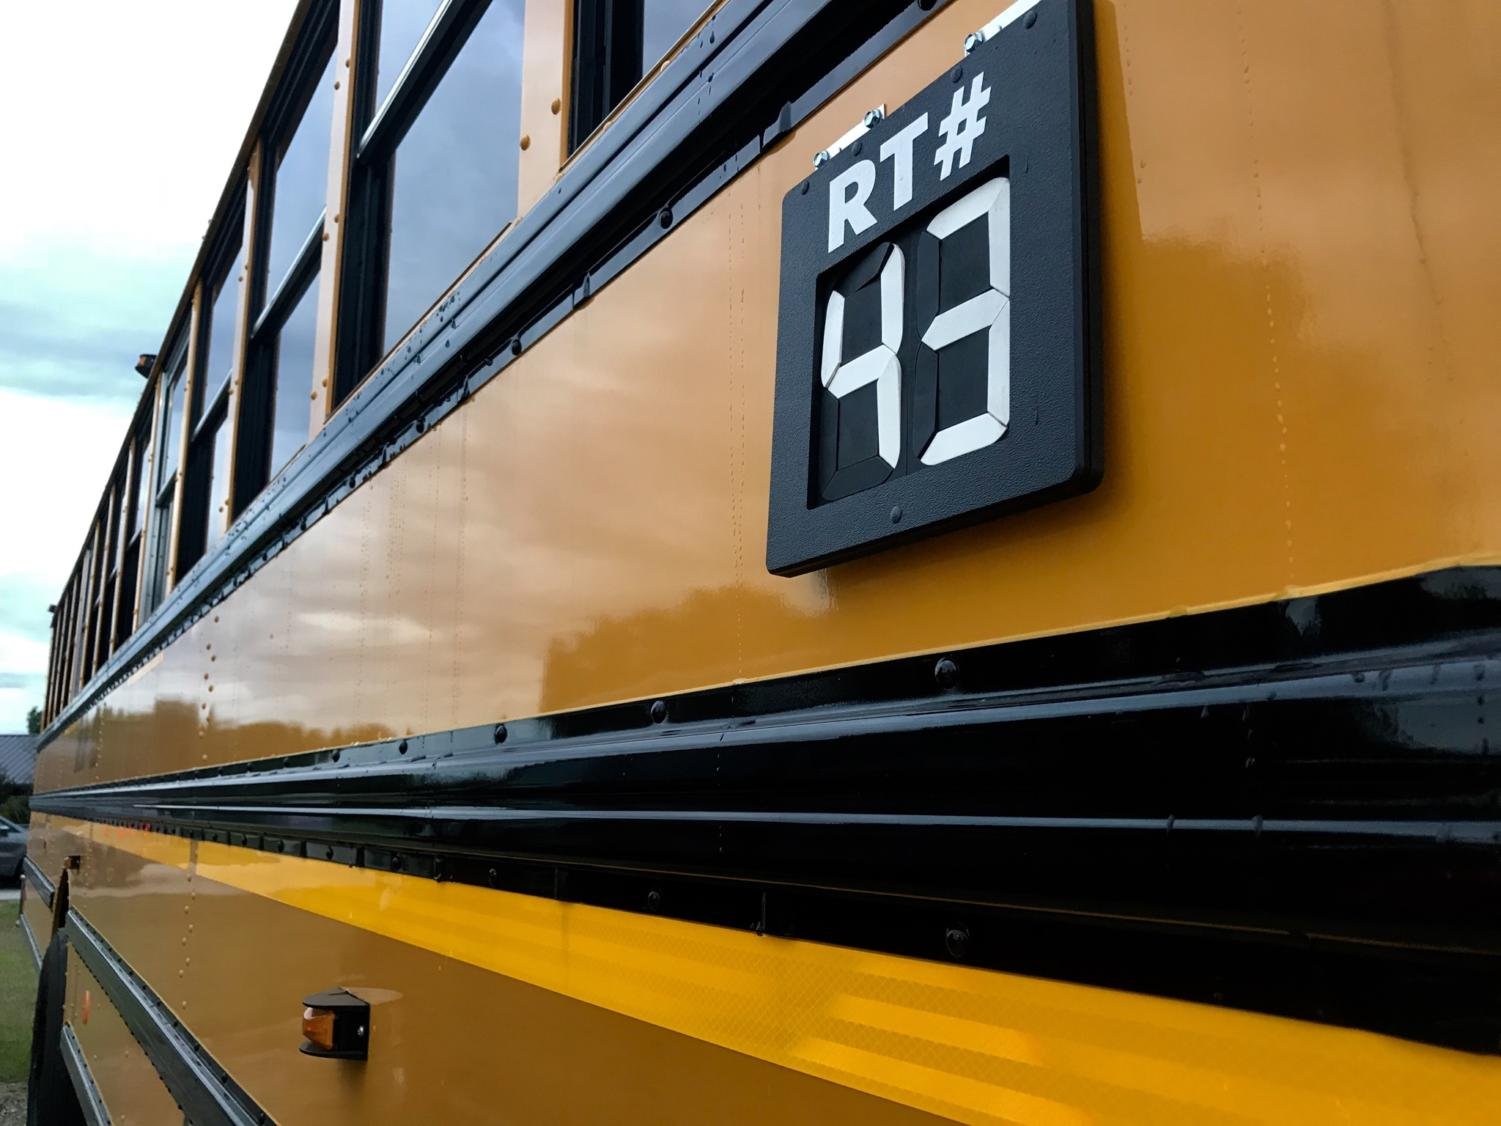 New school buses now have overhead storage areas, a renovated air conditioning system and seatbelts.